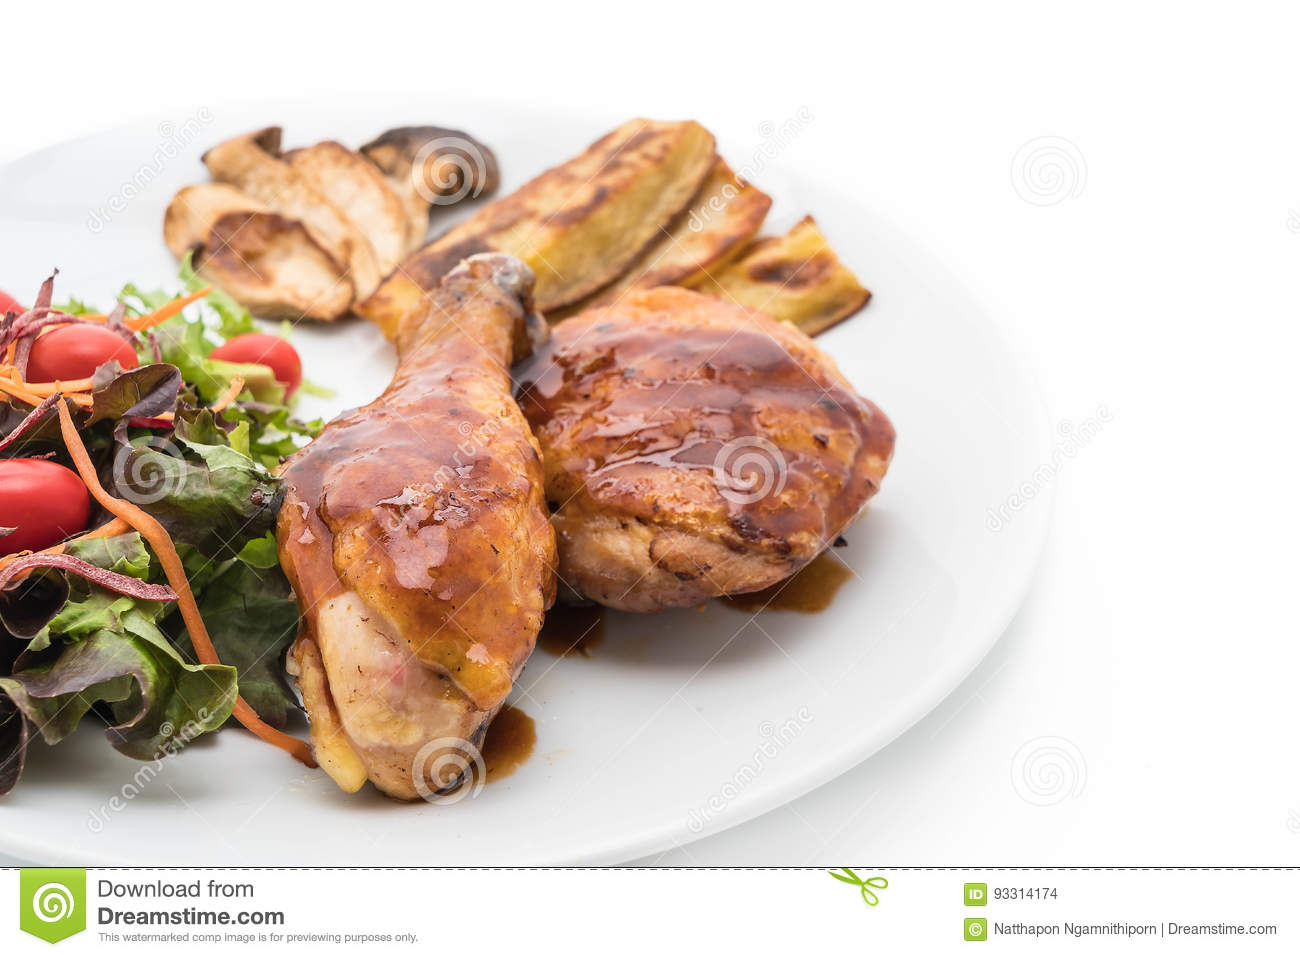 Grilles Chicken Steak With Teriyaki Sauce Stock Photo ...